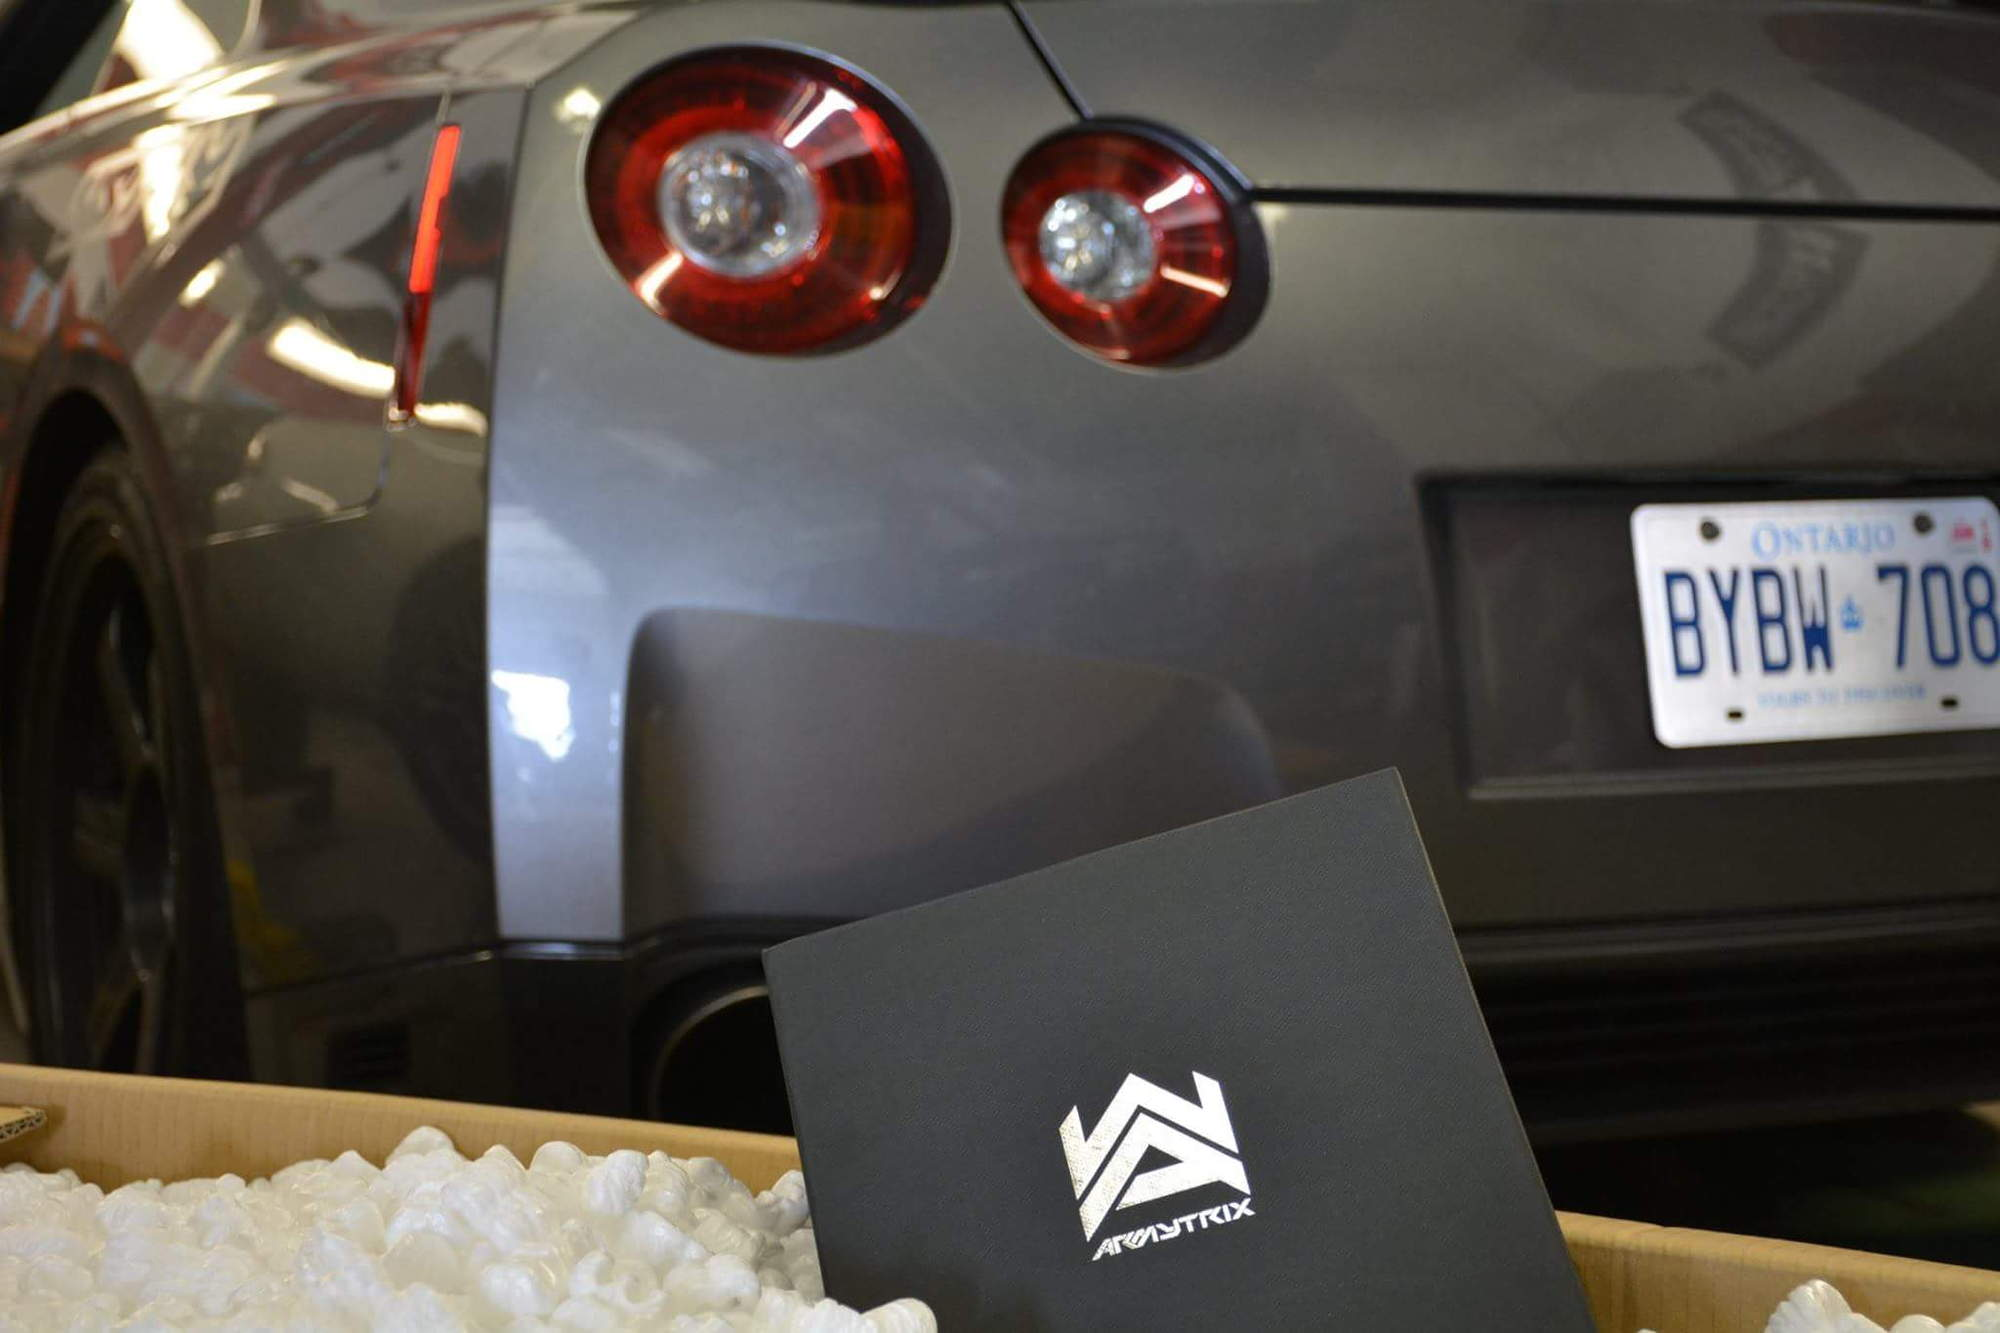 Armytrix supreme valved exhaust let s make your life more exciting facebook https www facebook com armytrix